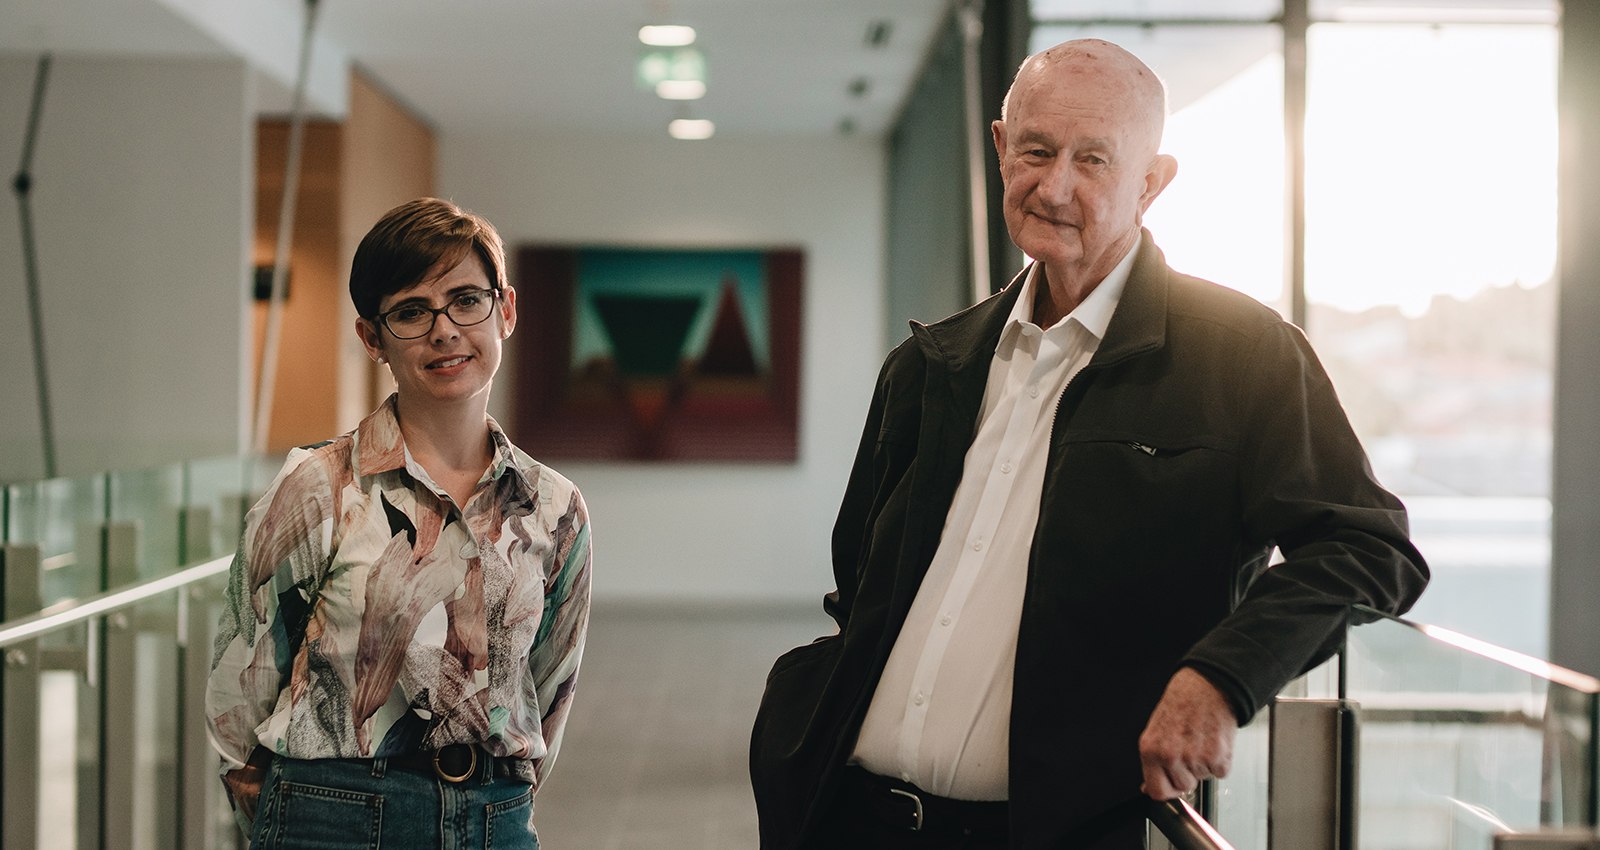 Professor Tony Broe and Dr Kylie Radford